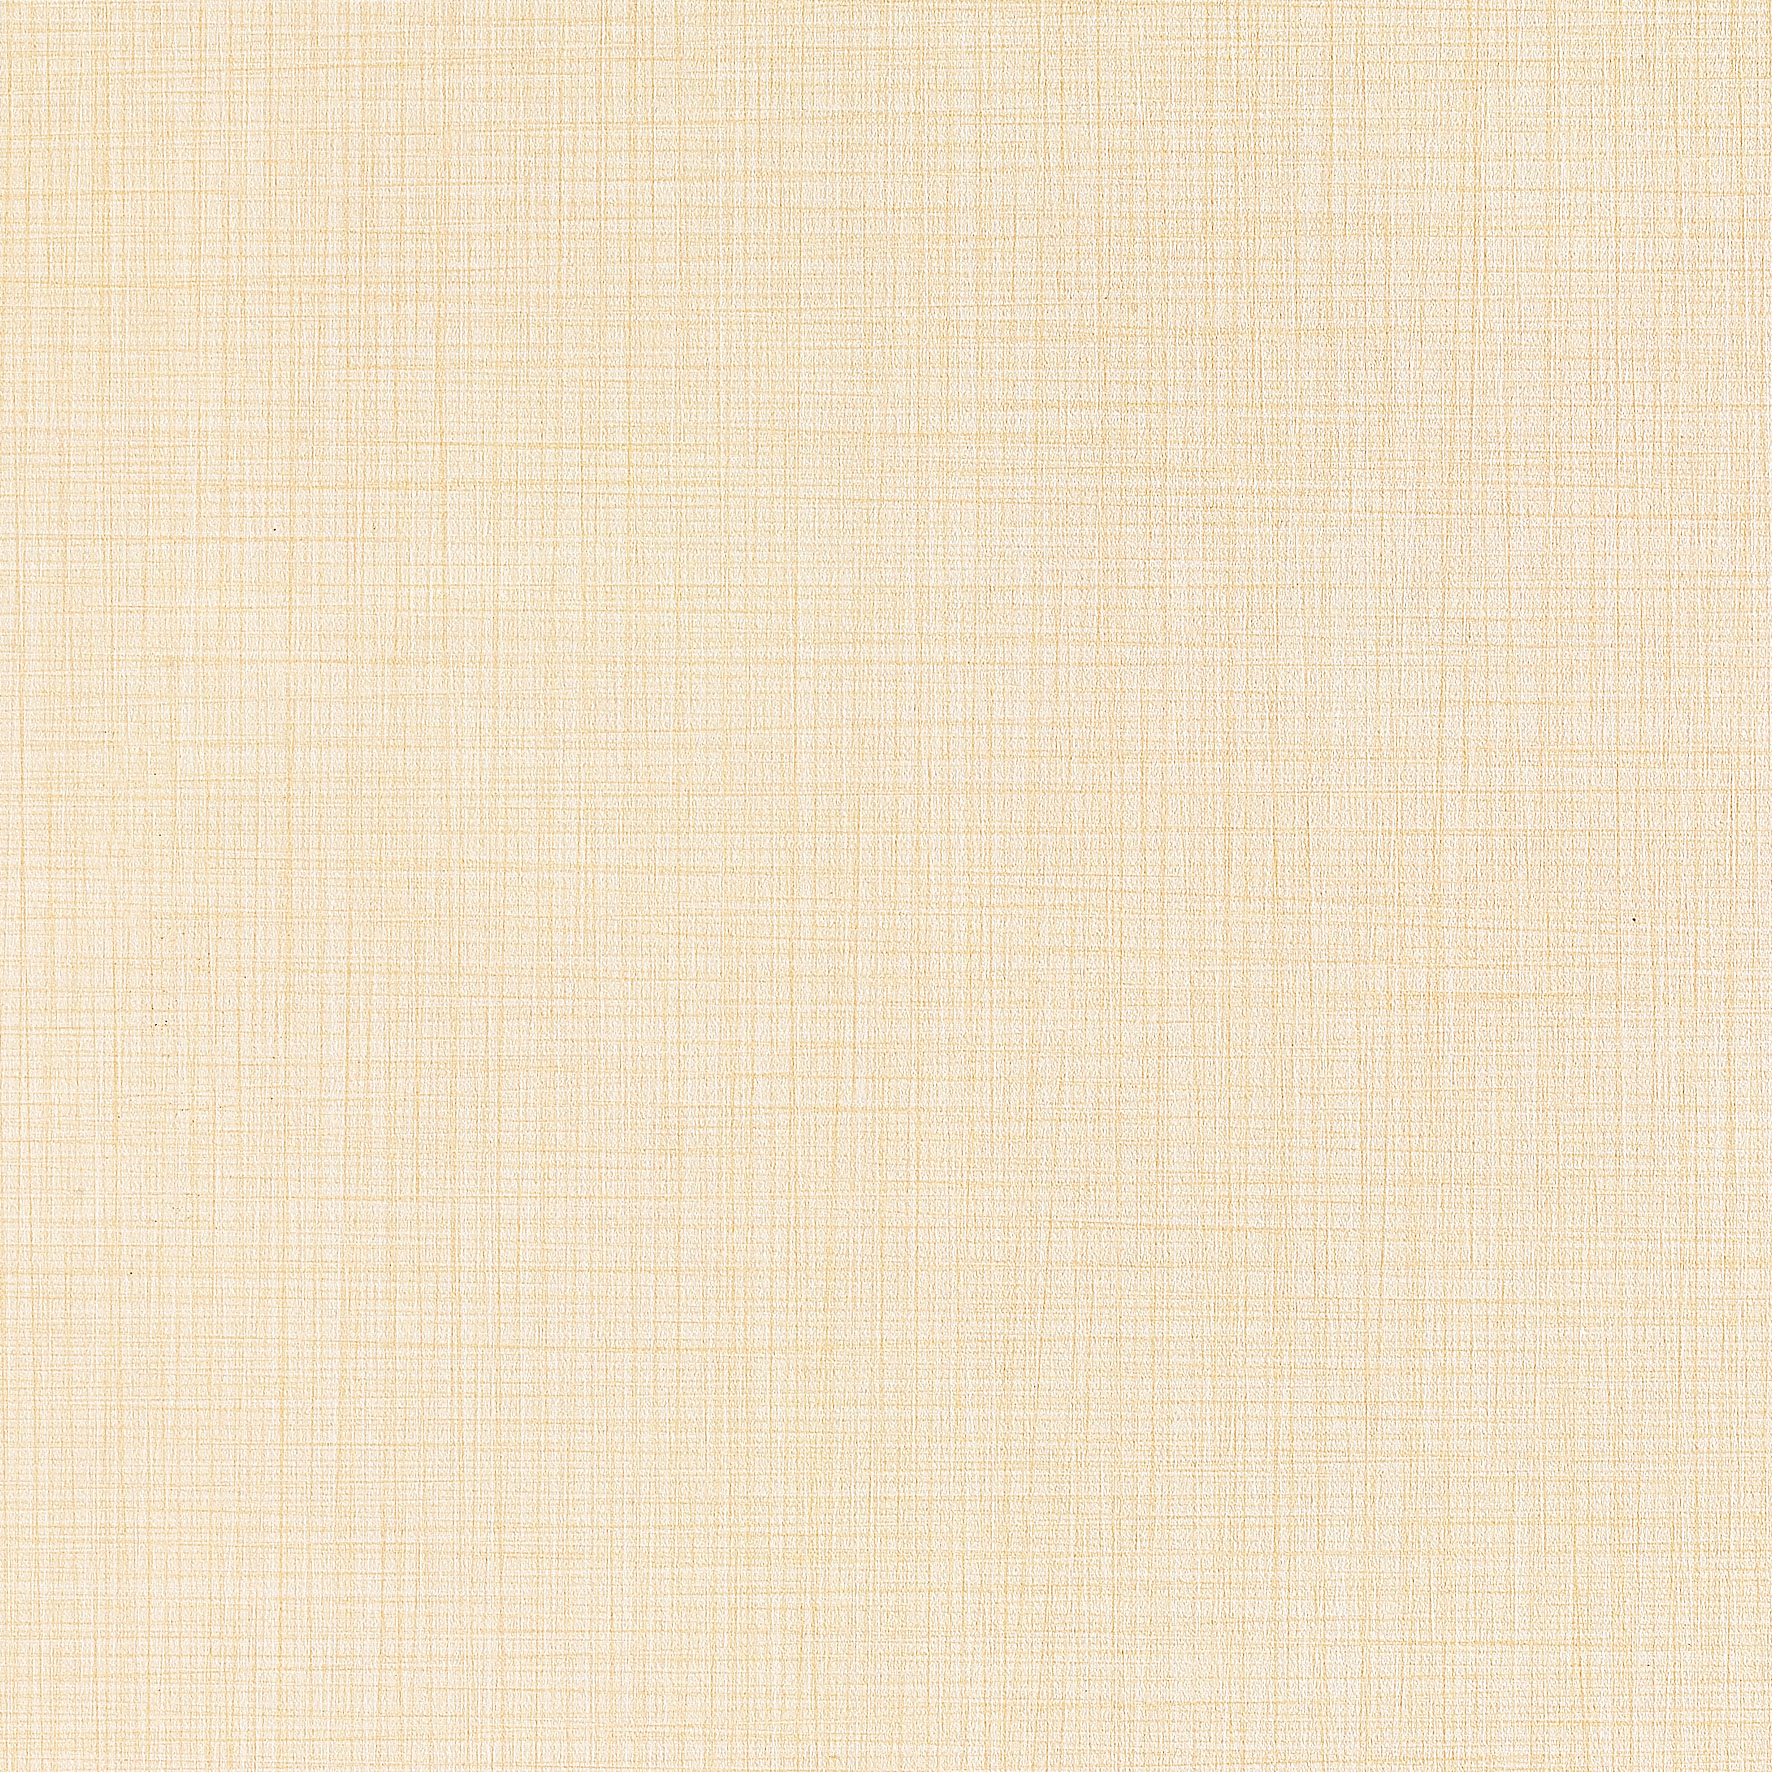 Porcelain Tile | Woven Series - HSLB6004 | by Hospitality Finishes